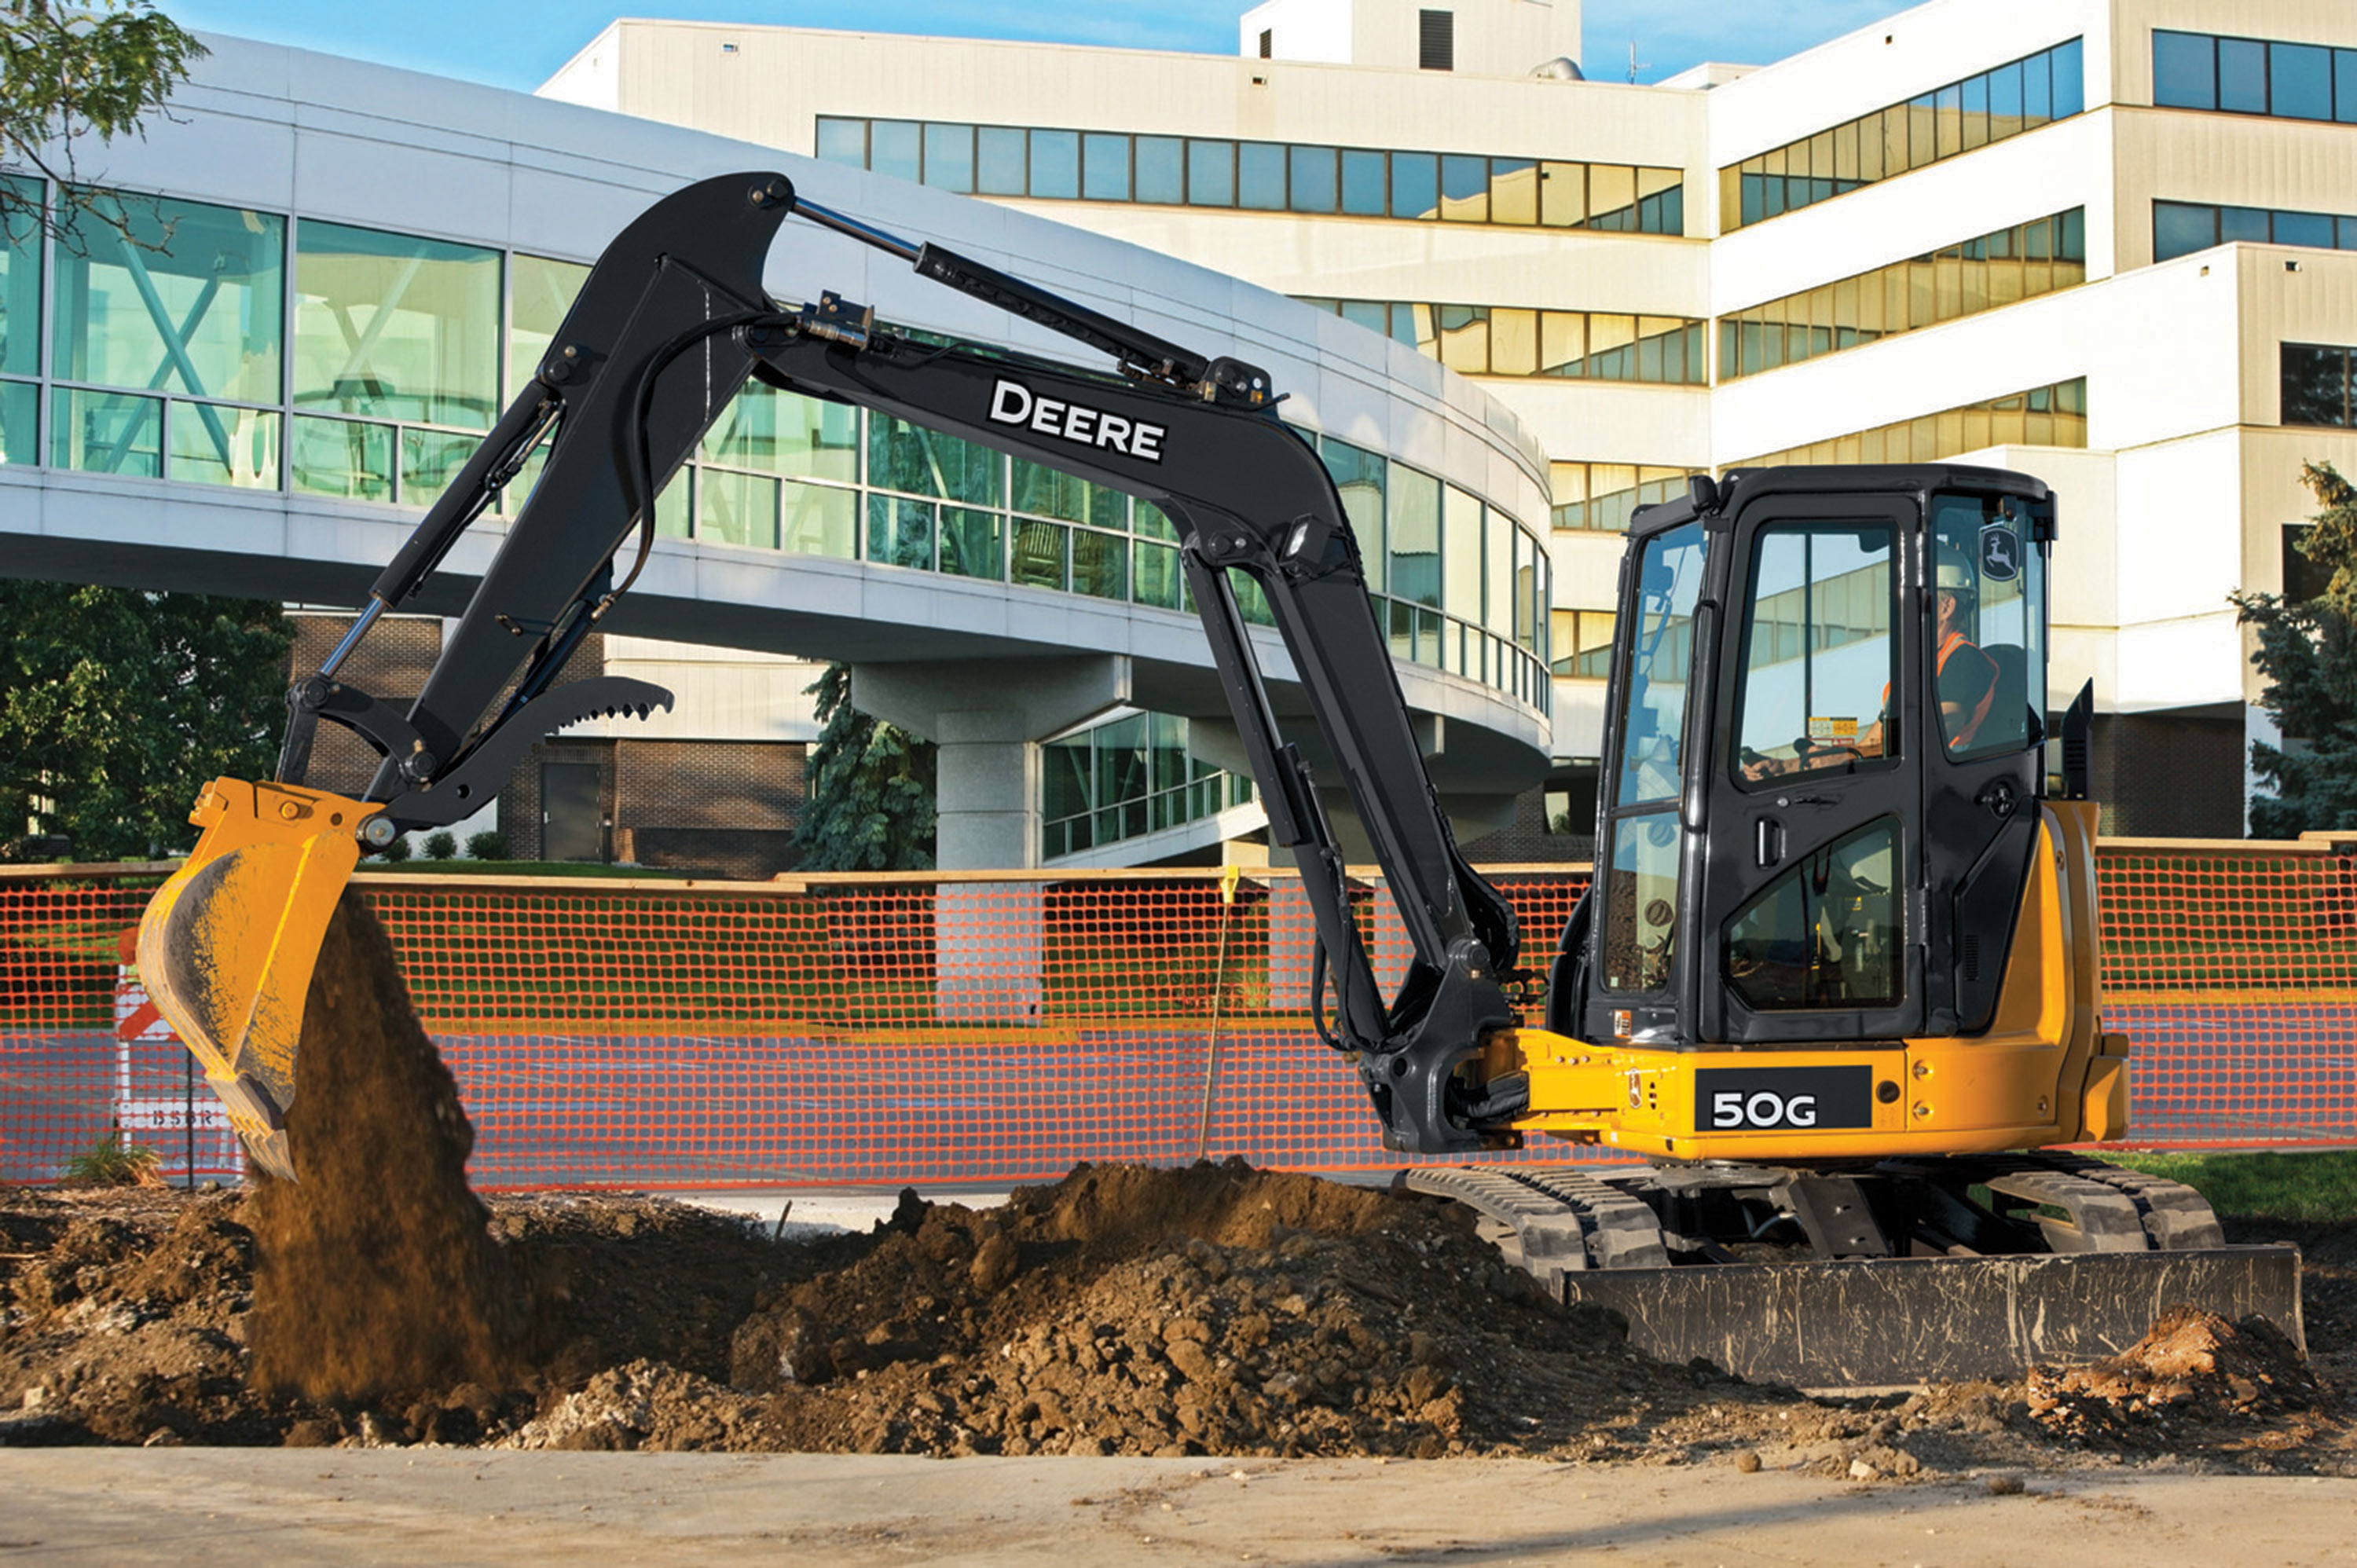 The 50G Compact Excavator is one of the newest models in the G-Series ...